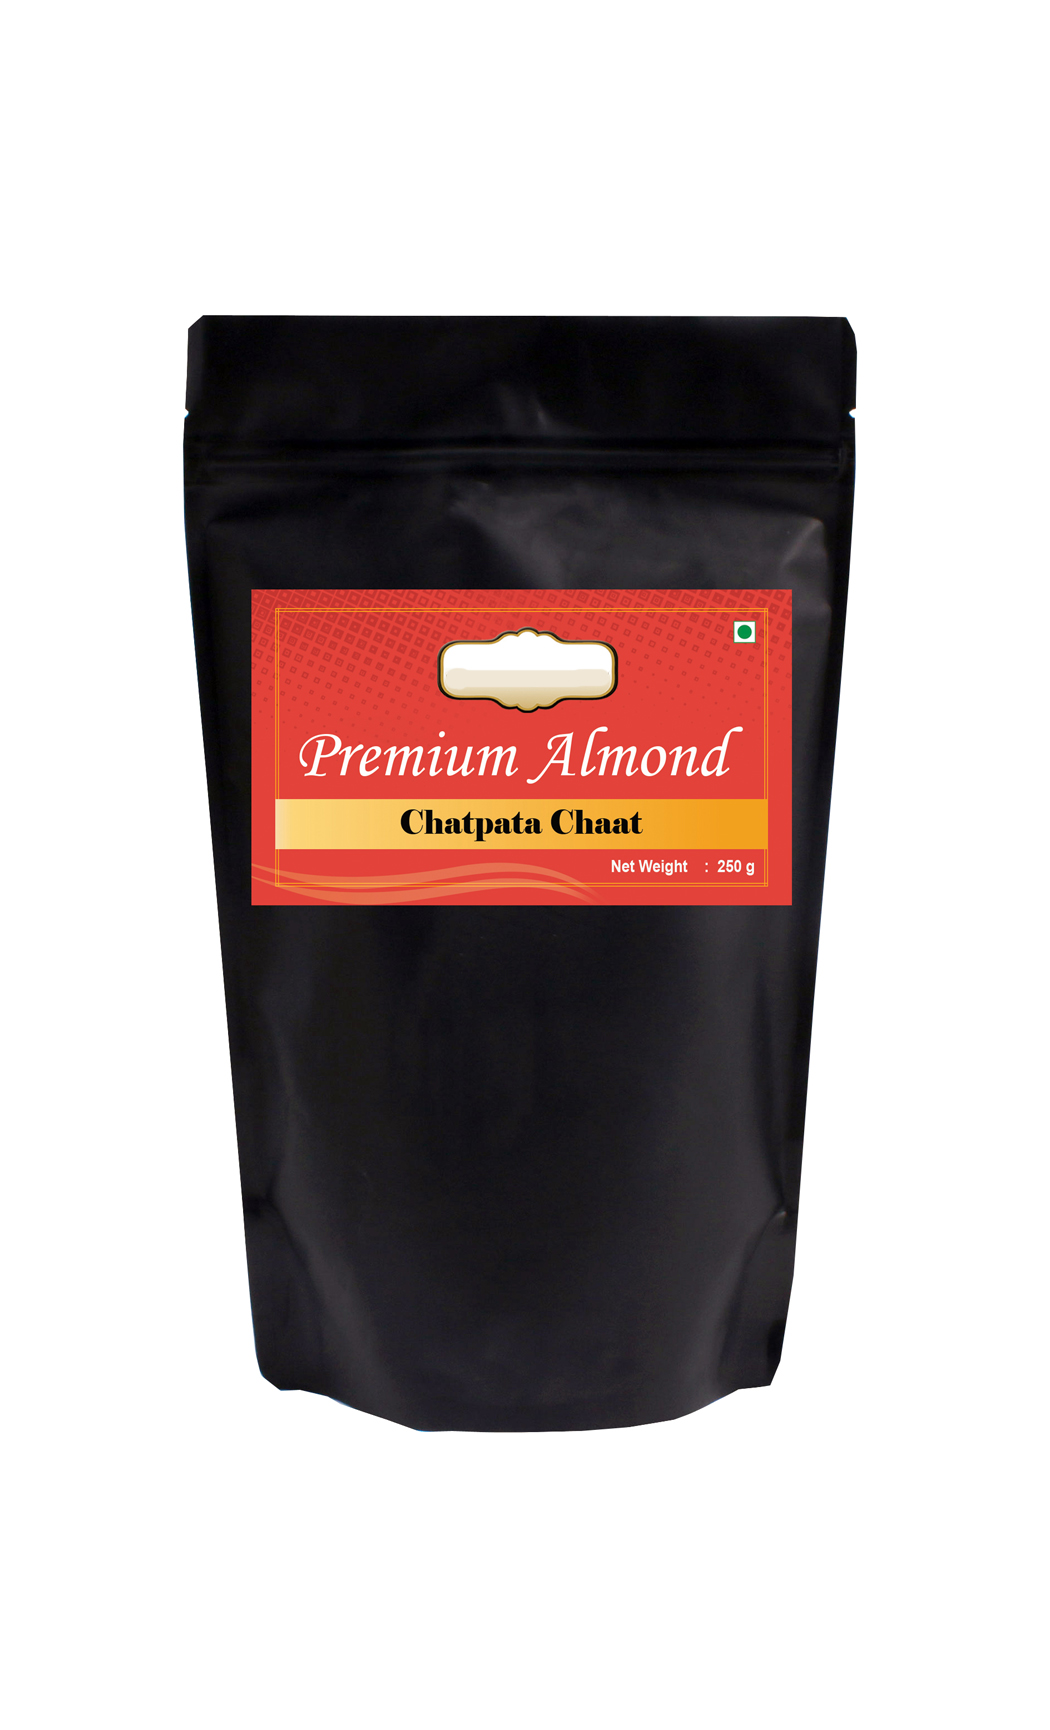 Chatpata Chaat Almonds 250gms - Buy Online